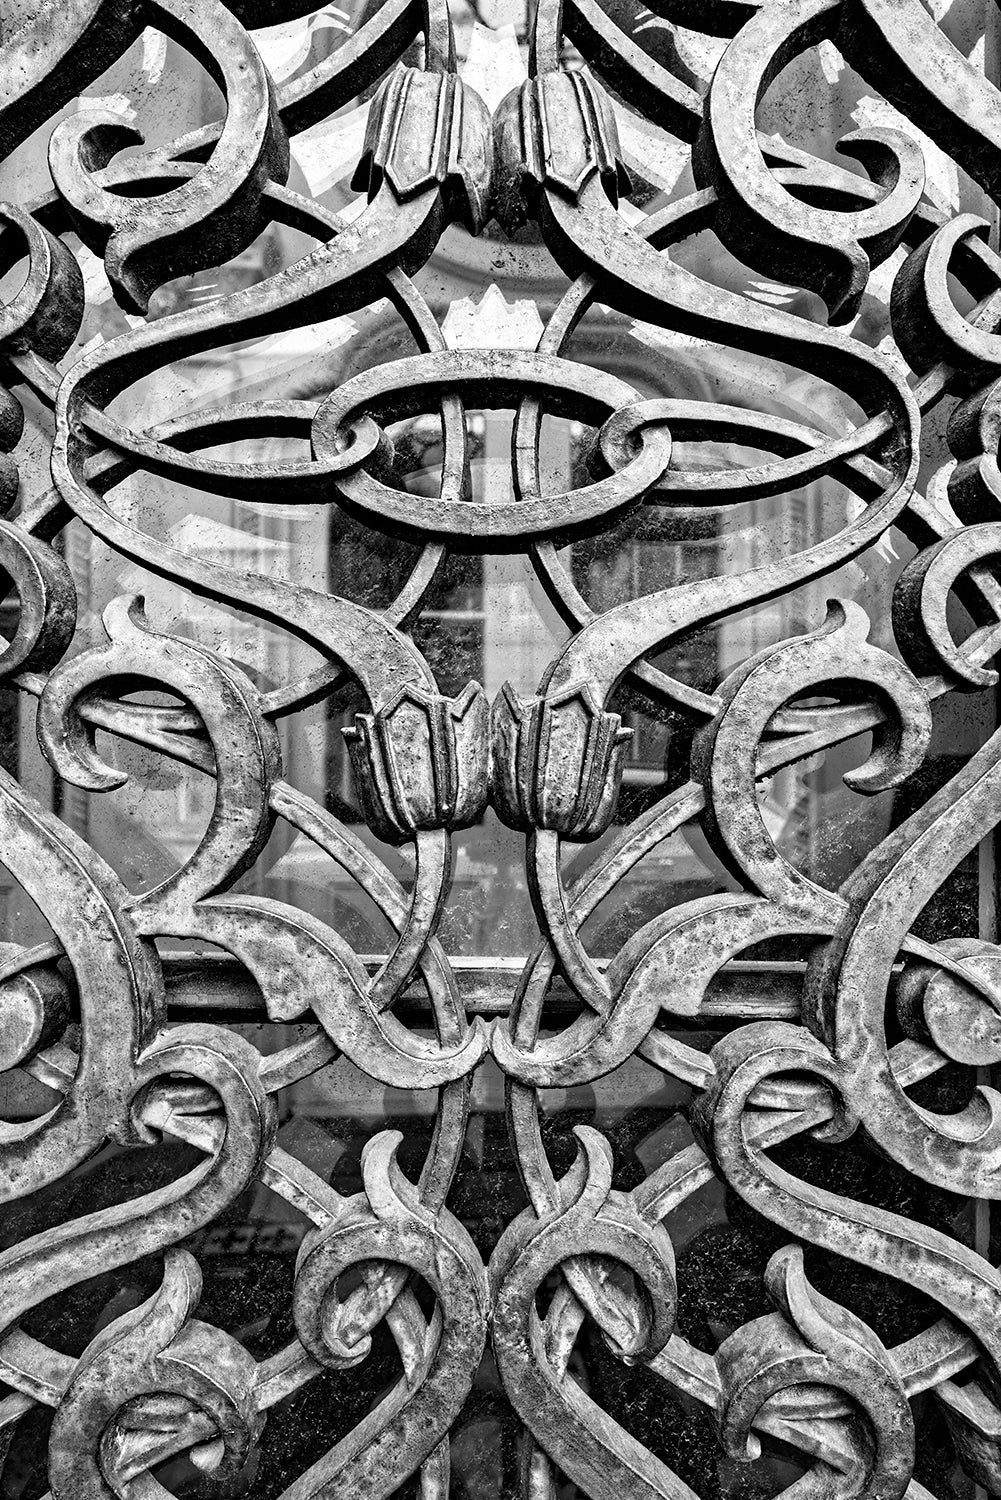 Historic Charleston Ironwork Detail - Black and White Photograph by Keith Dotson. Buy a fine art print.